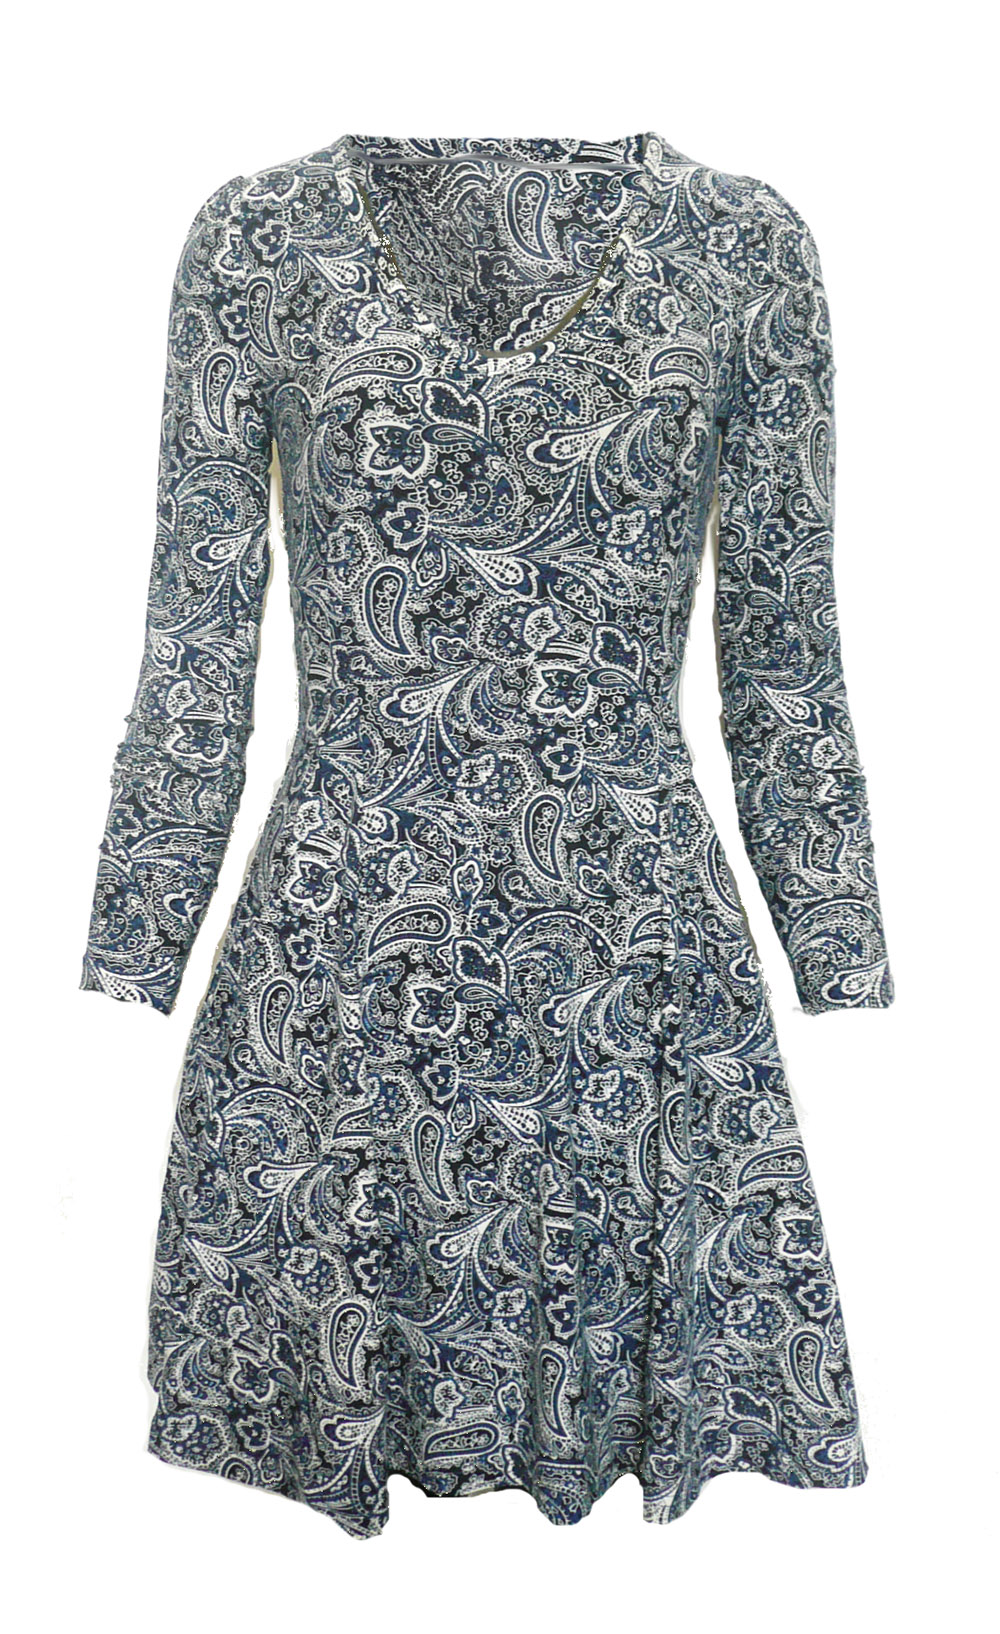 dress navy paisley.jpg